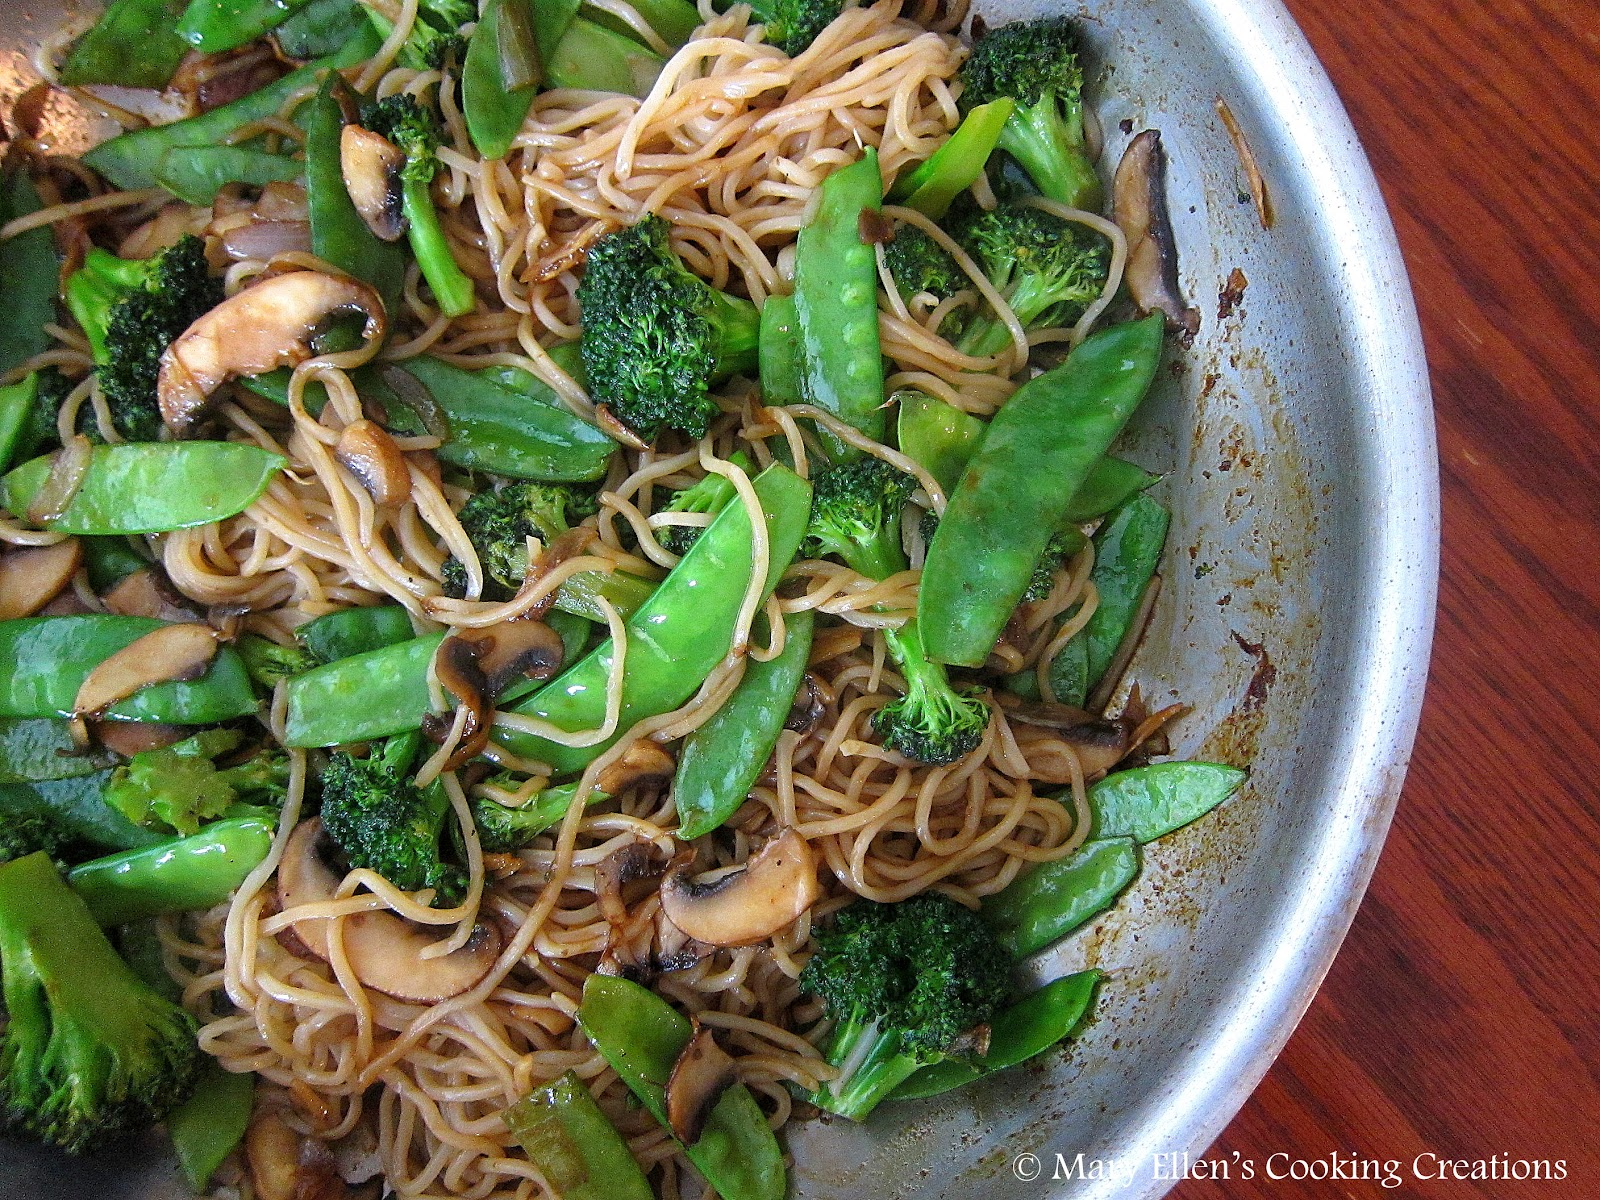 Mary Ellen's Cooking Creations: Vegetable Lo Mein